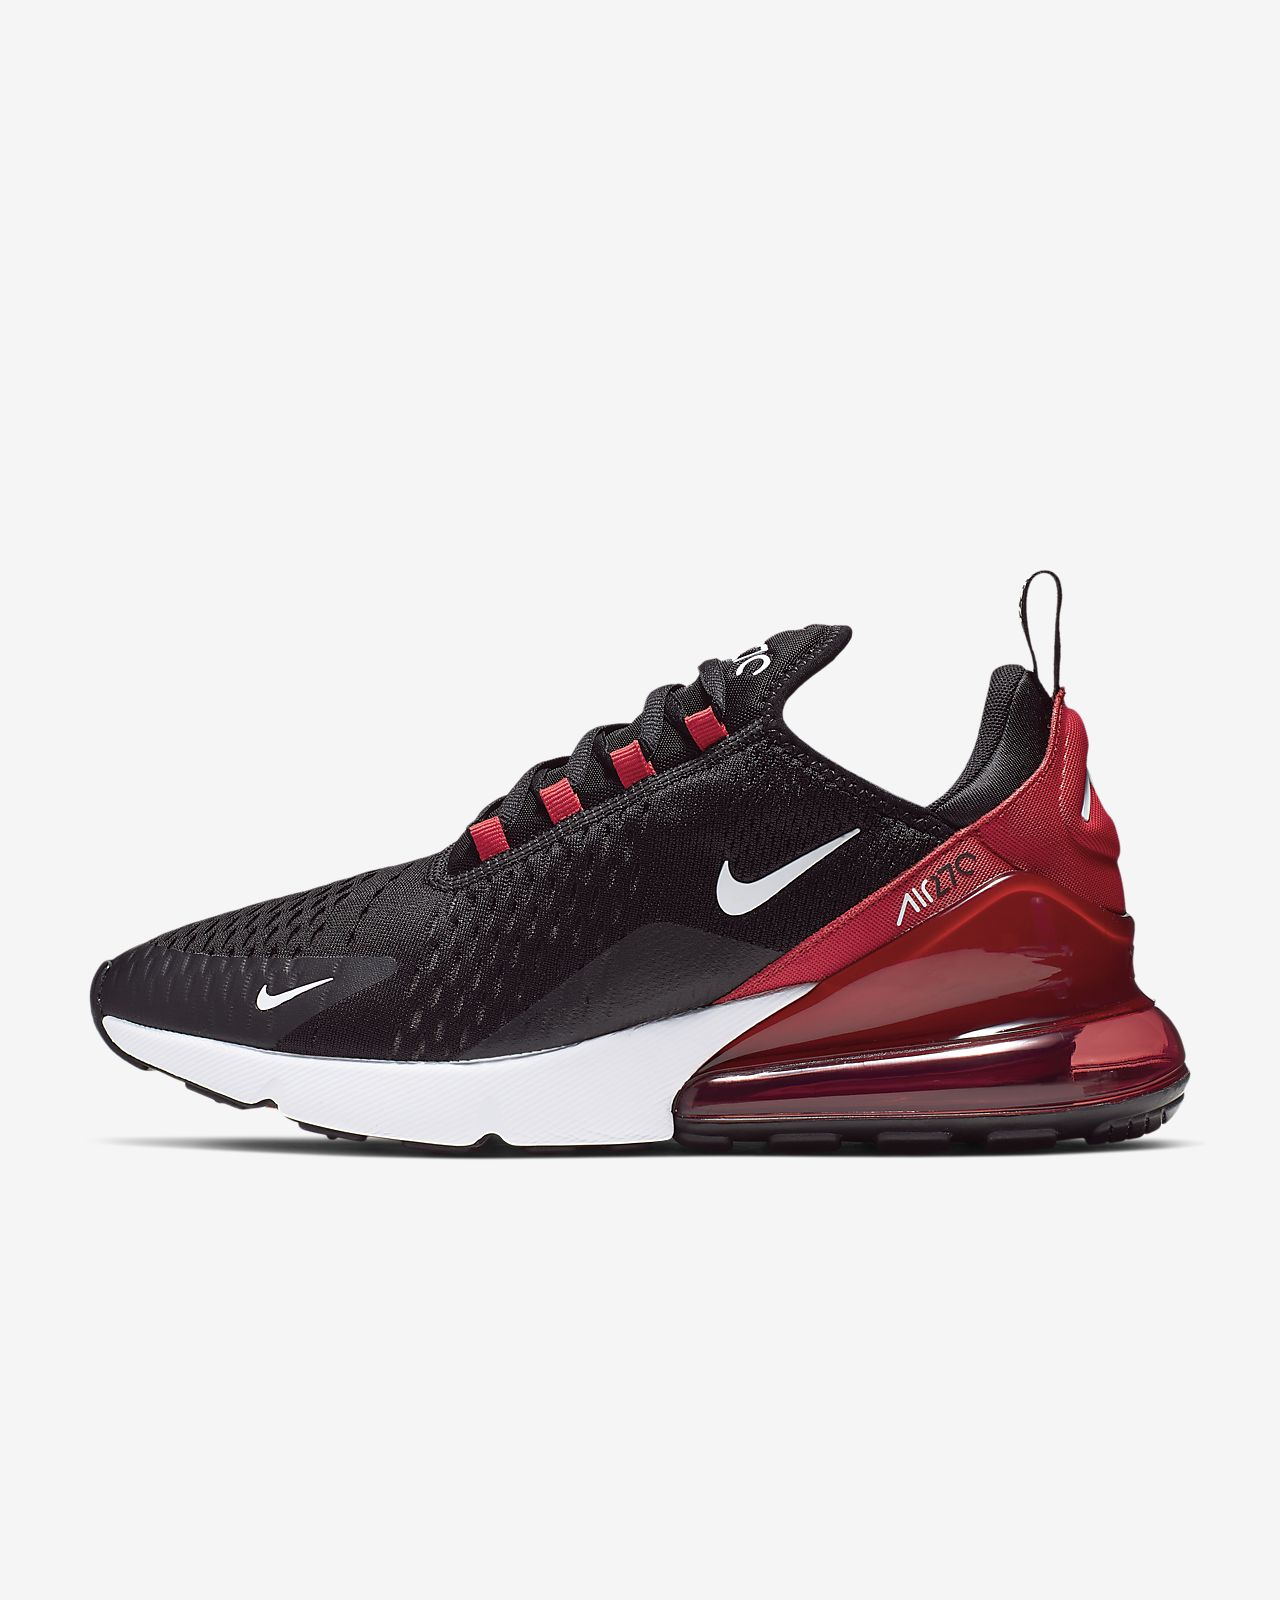 meet 0ceba b515a Men s Shoe. Nike Air Max 270